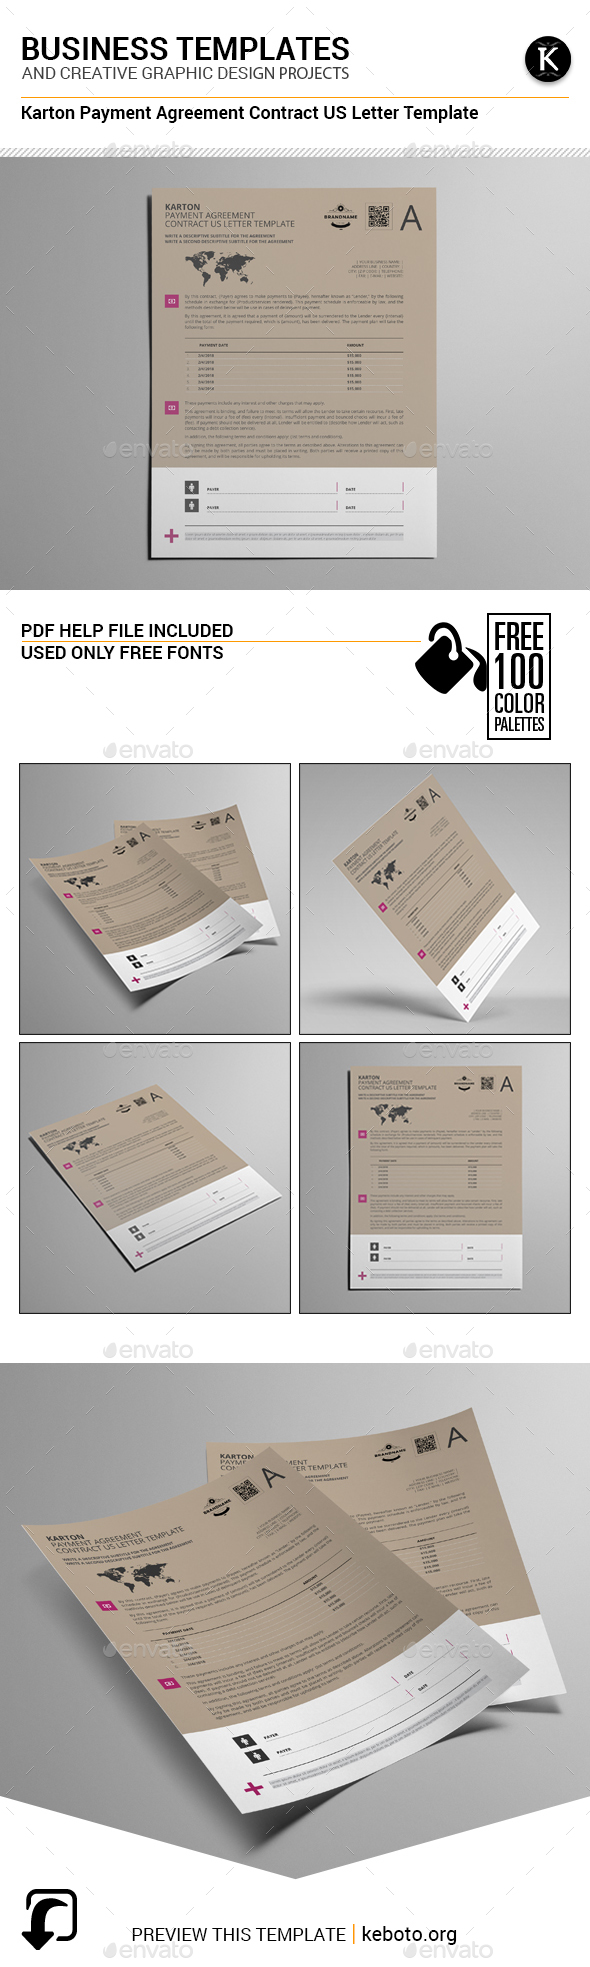 Karton Payment Agreement Contract US Letter Template - Miscellaneous Print Templates